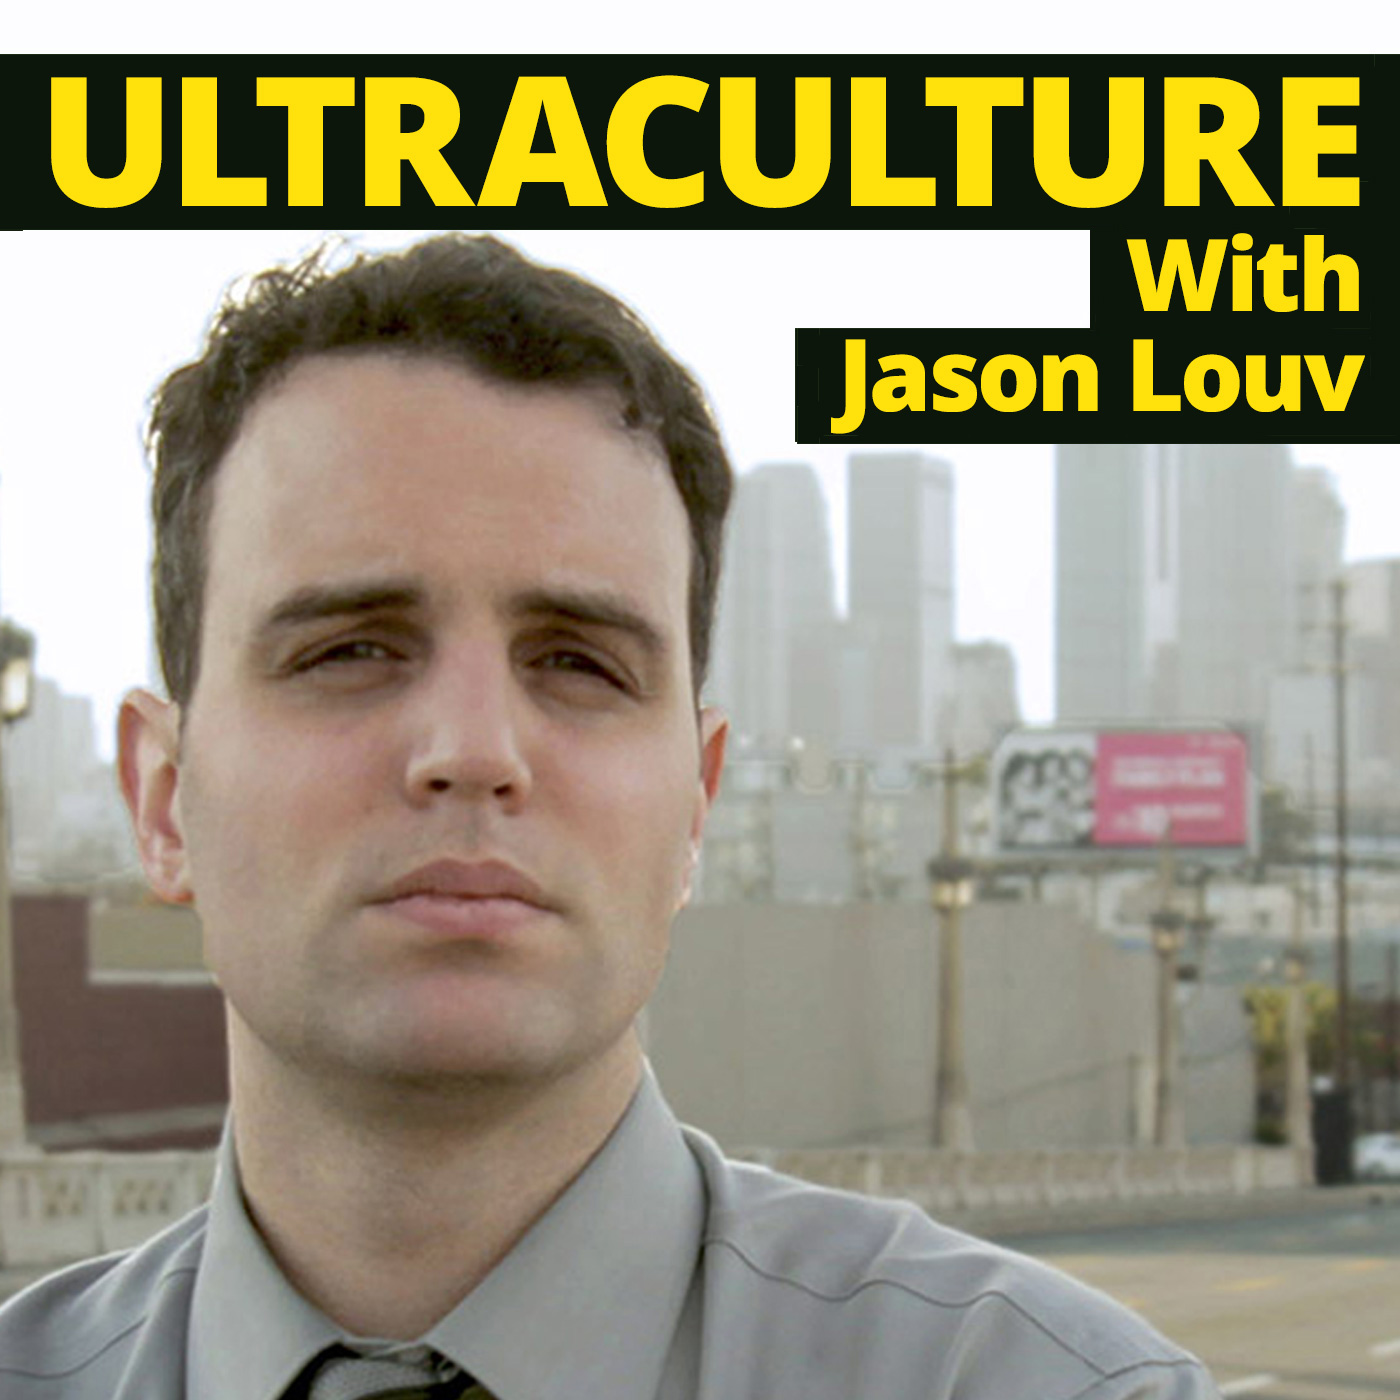 Ultraculture With Jason Louv